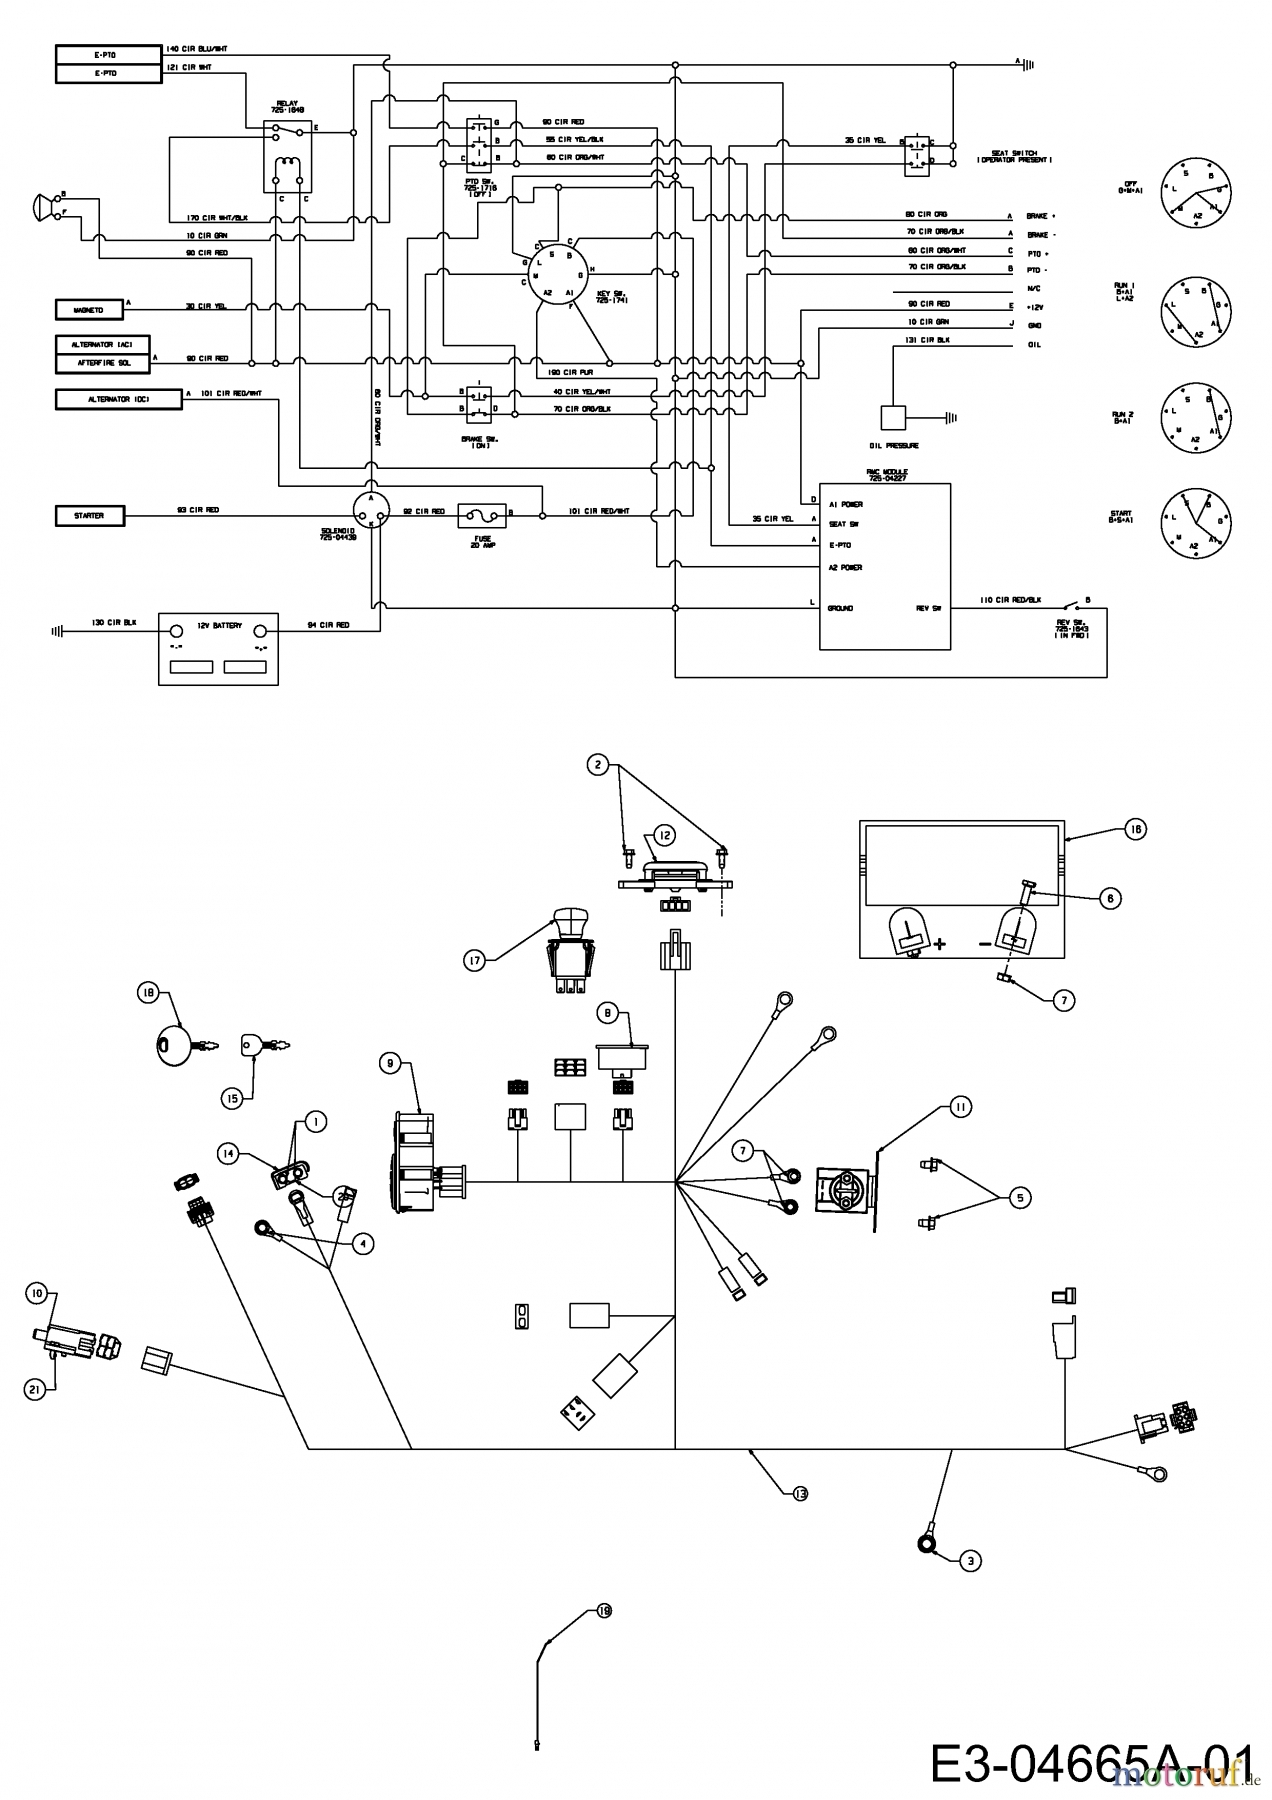 cub cadet zero turn parts diagram | automotive parts ... cub cadet zero turn wiring diagram zero turn wiring diagram #11